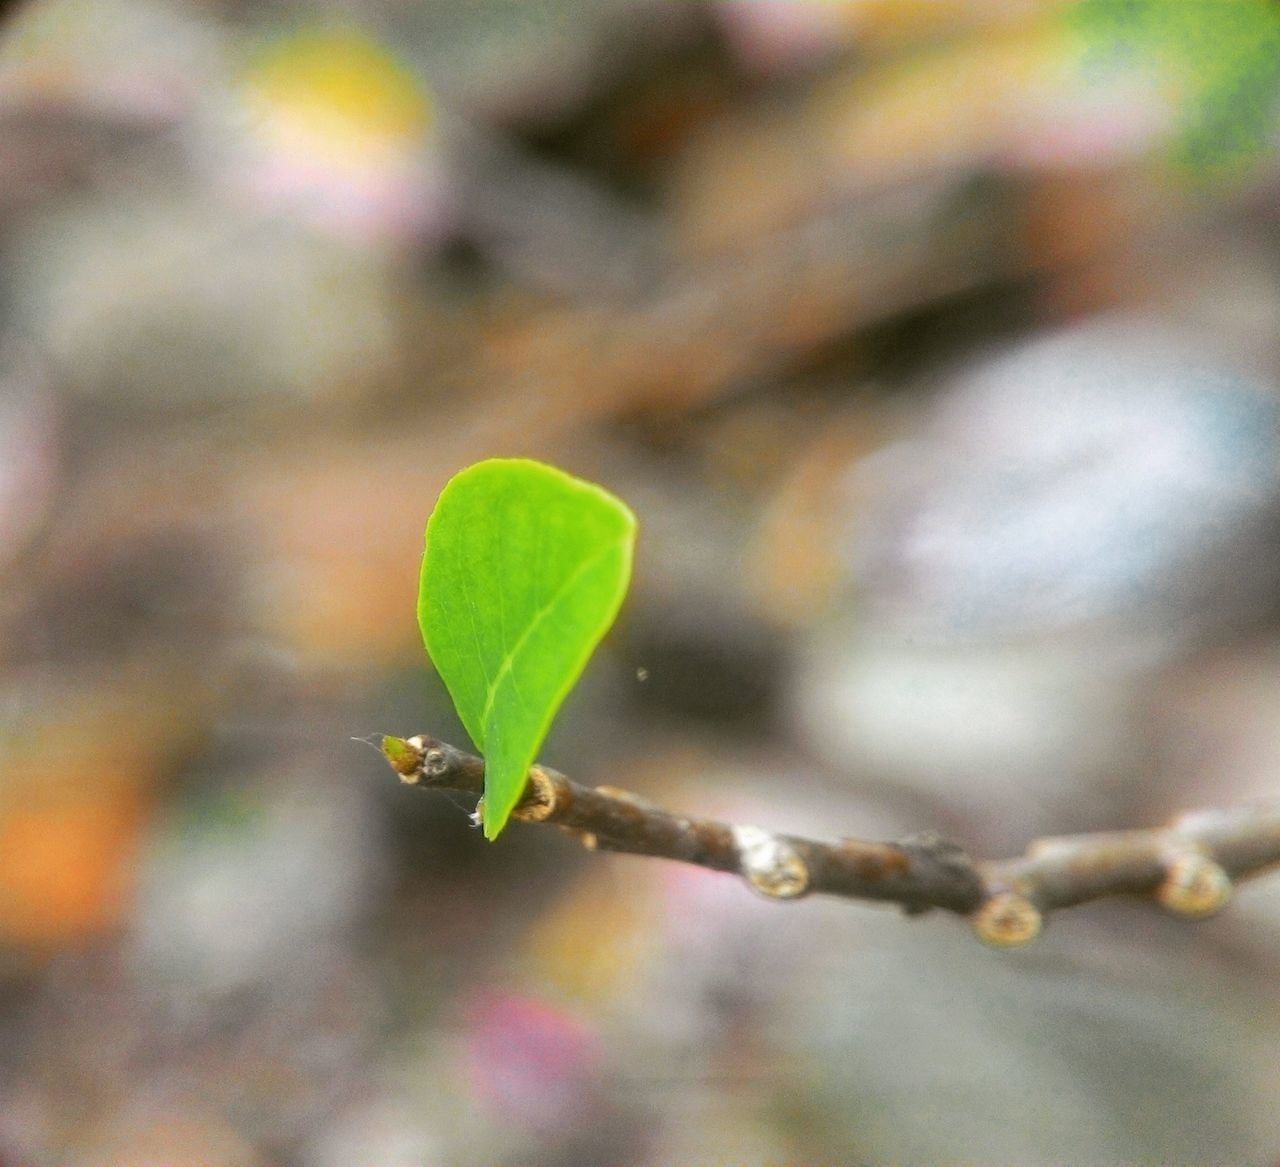 Leaf Leaf Plant Growth Nature Green Color No People Close-up Outdoors Beginnings Day Beauty In Nature Eyeemphotography Beauty In Nature Nature EyeEmBestPics Plant Green Color Macrophotography Grass Macro Beauty Macro_secrets Macro_captures Photography Macroworld Macro Clique